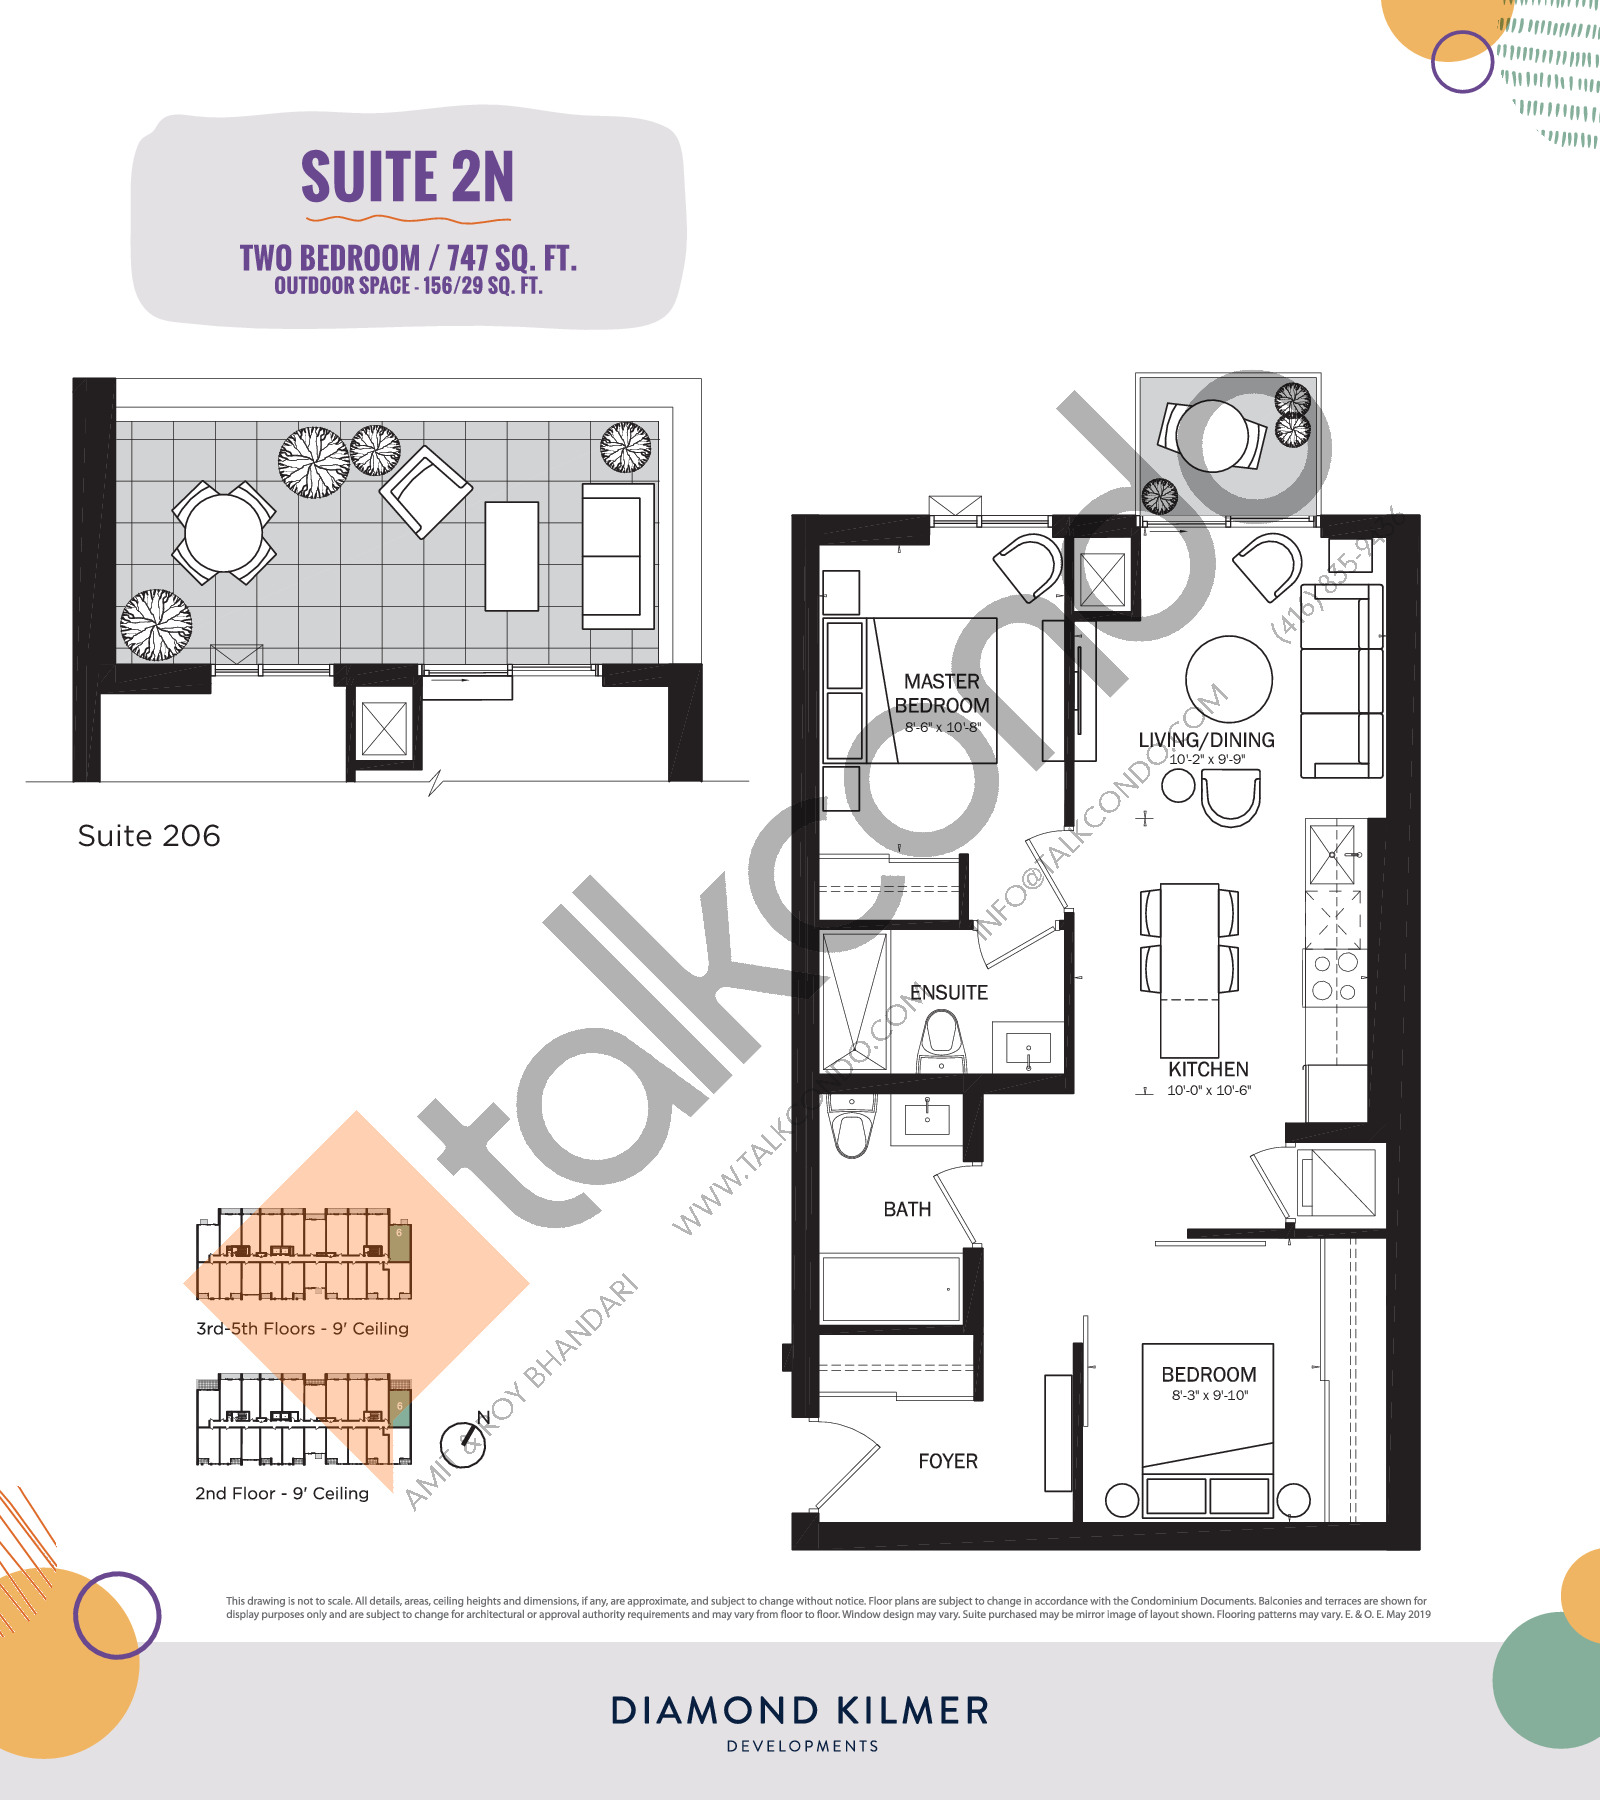 2N Floor Plan at Reunion Crossing Condos & Urban Towns - 747 sq.ft